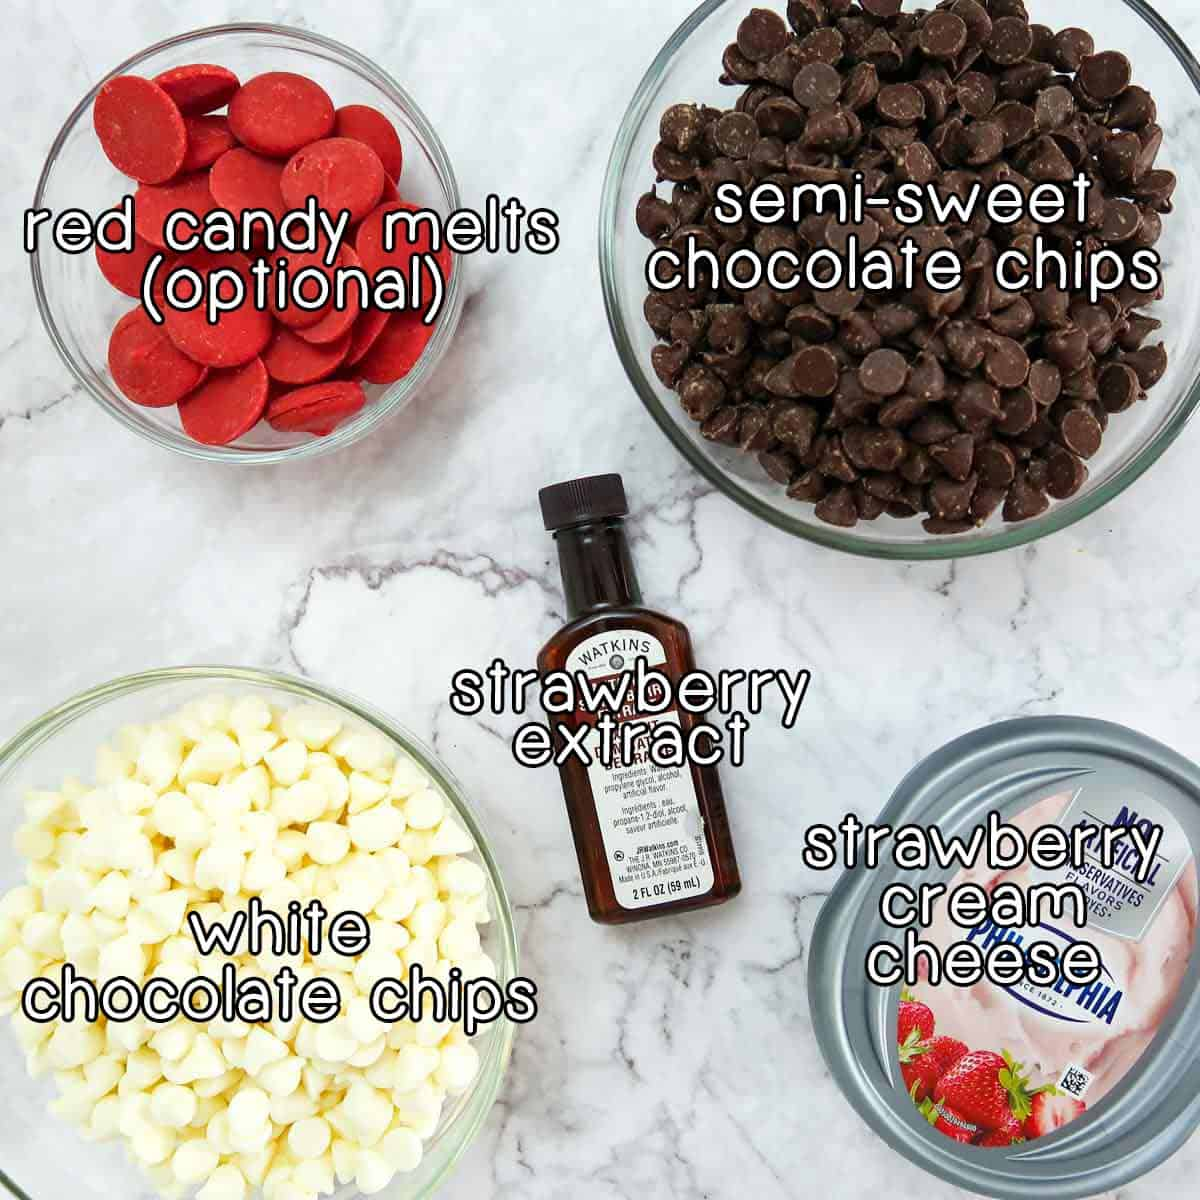 Overhead shot of ingredients- Red candy melts, semi-sweet chocolate chips, white chocolate chips, strawberry cream cheese, and strawberry extract.